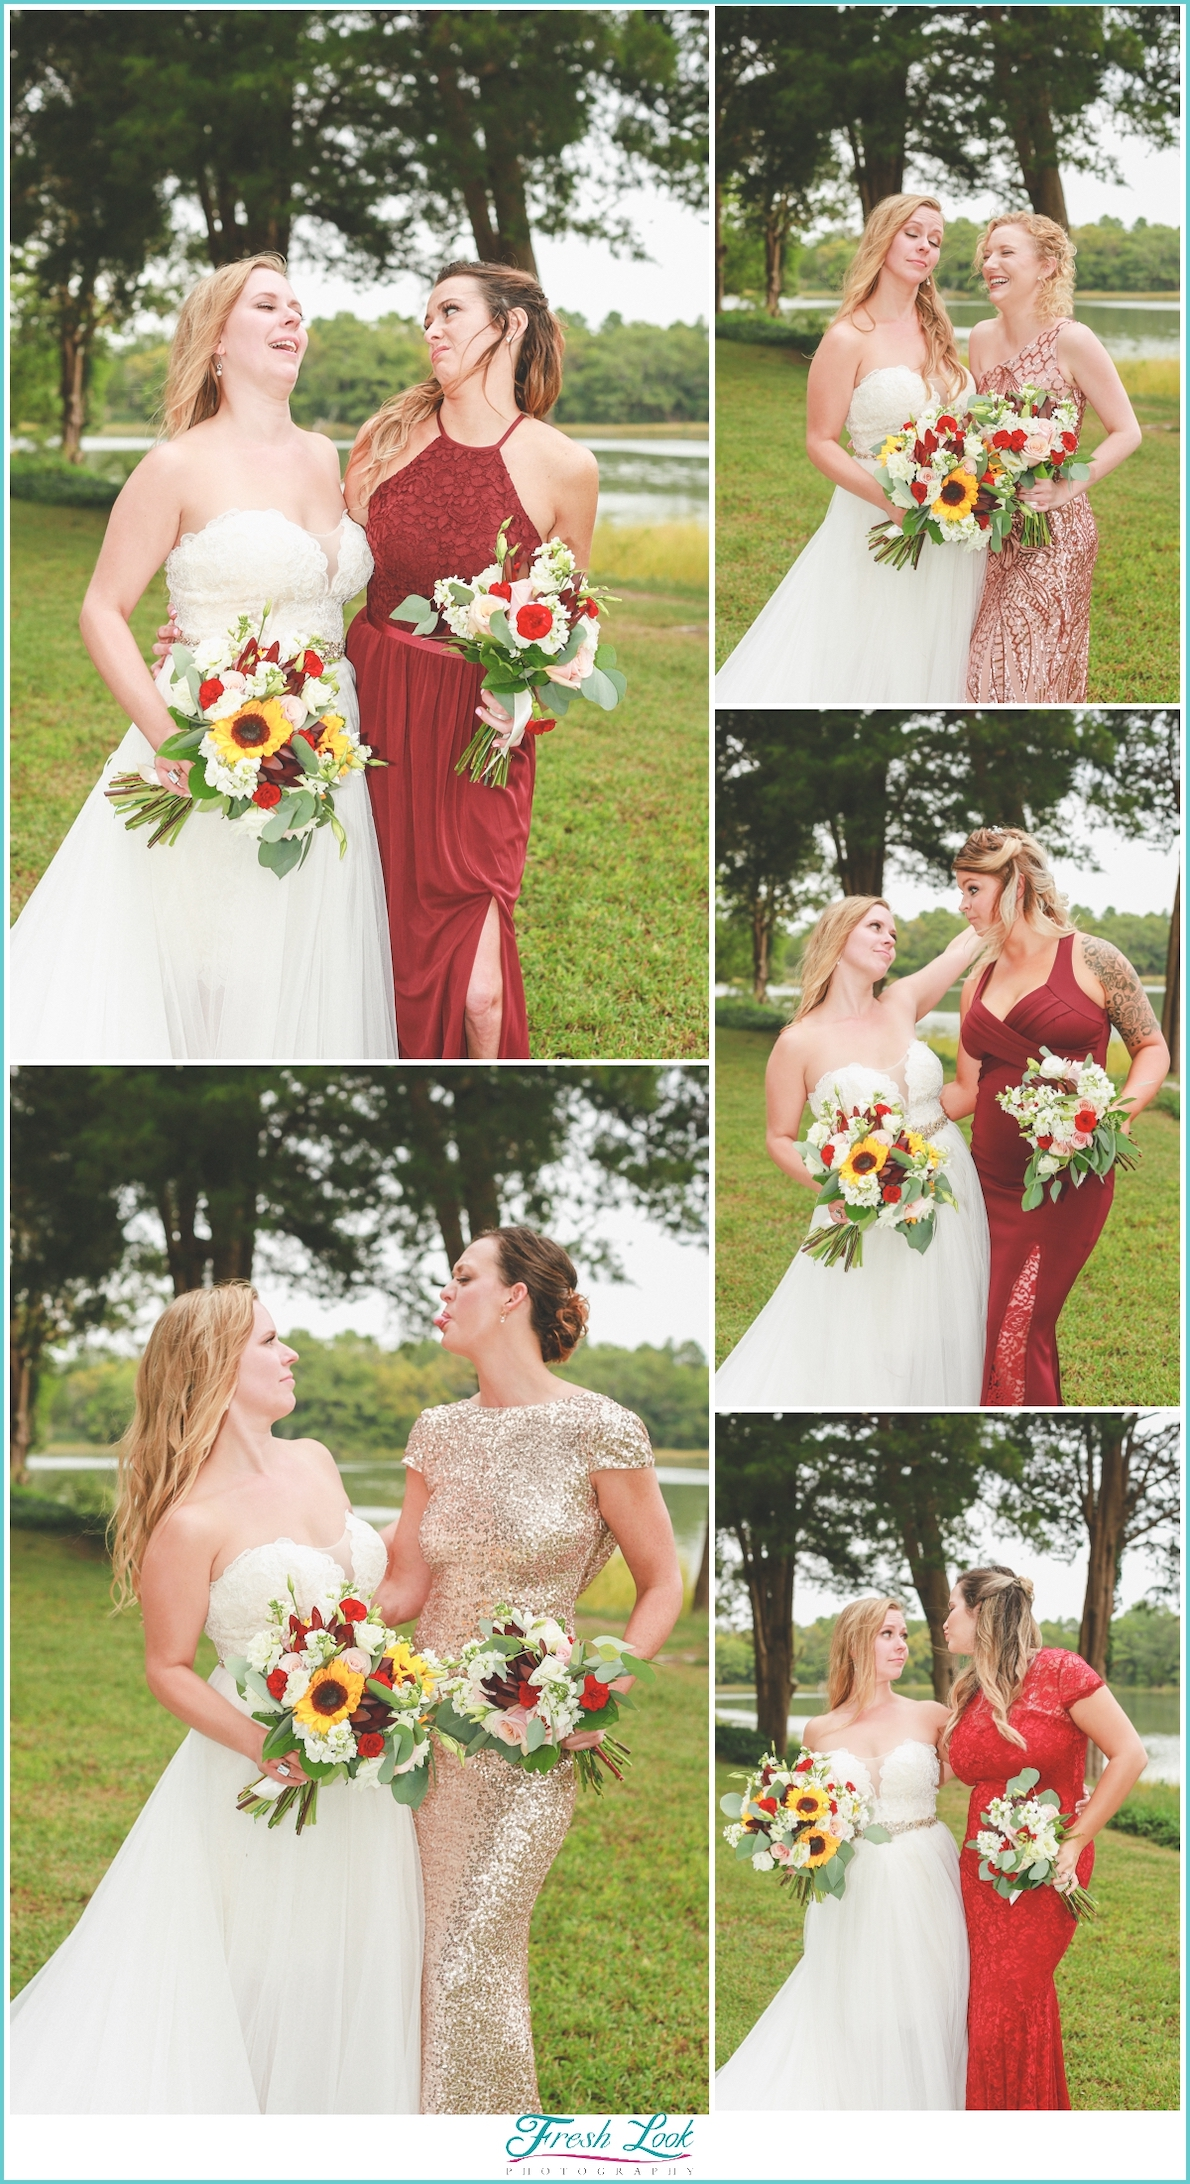 bridesmaids being silly